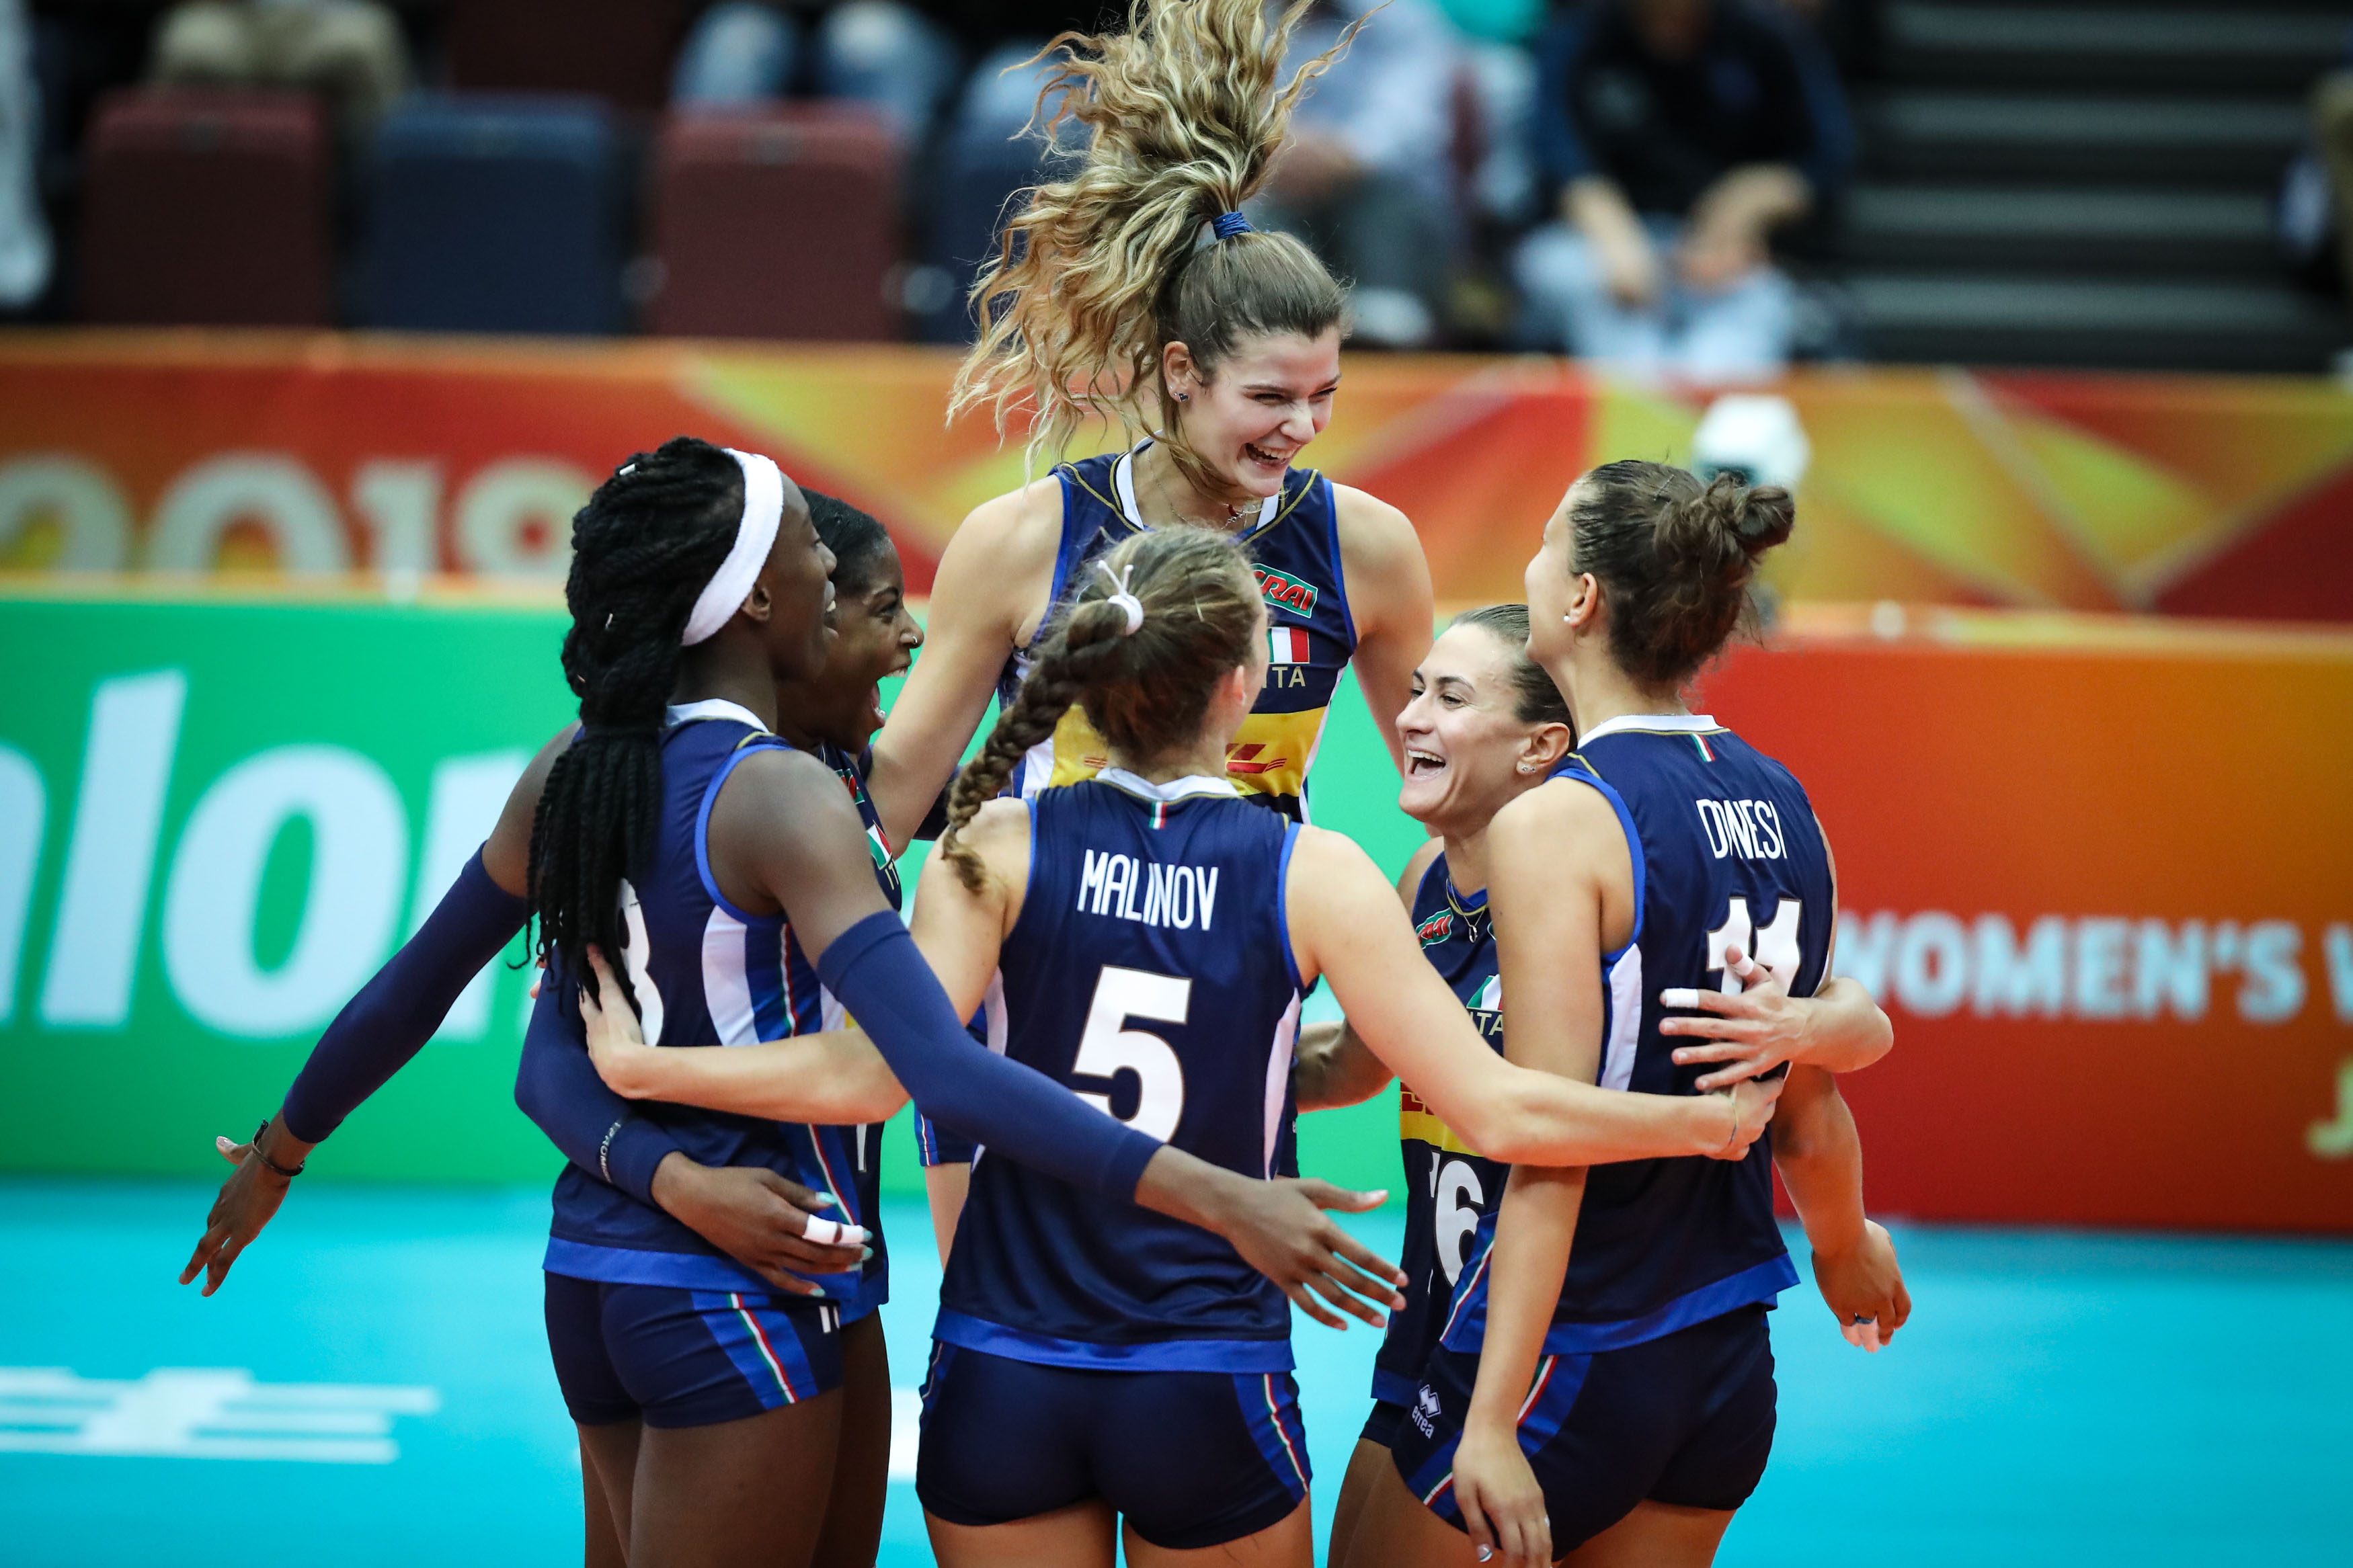 Mondiali Volley, Italia-Russia: 3-1. Fenomenali! Azzurre alle Final Six